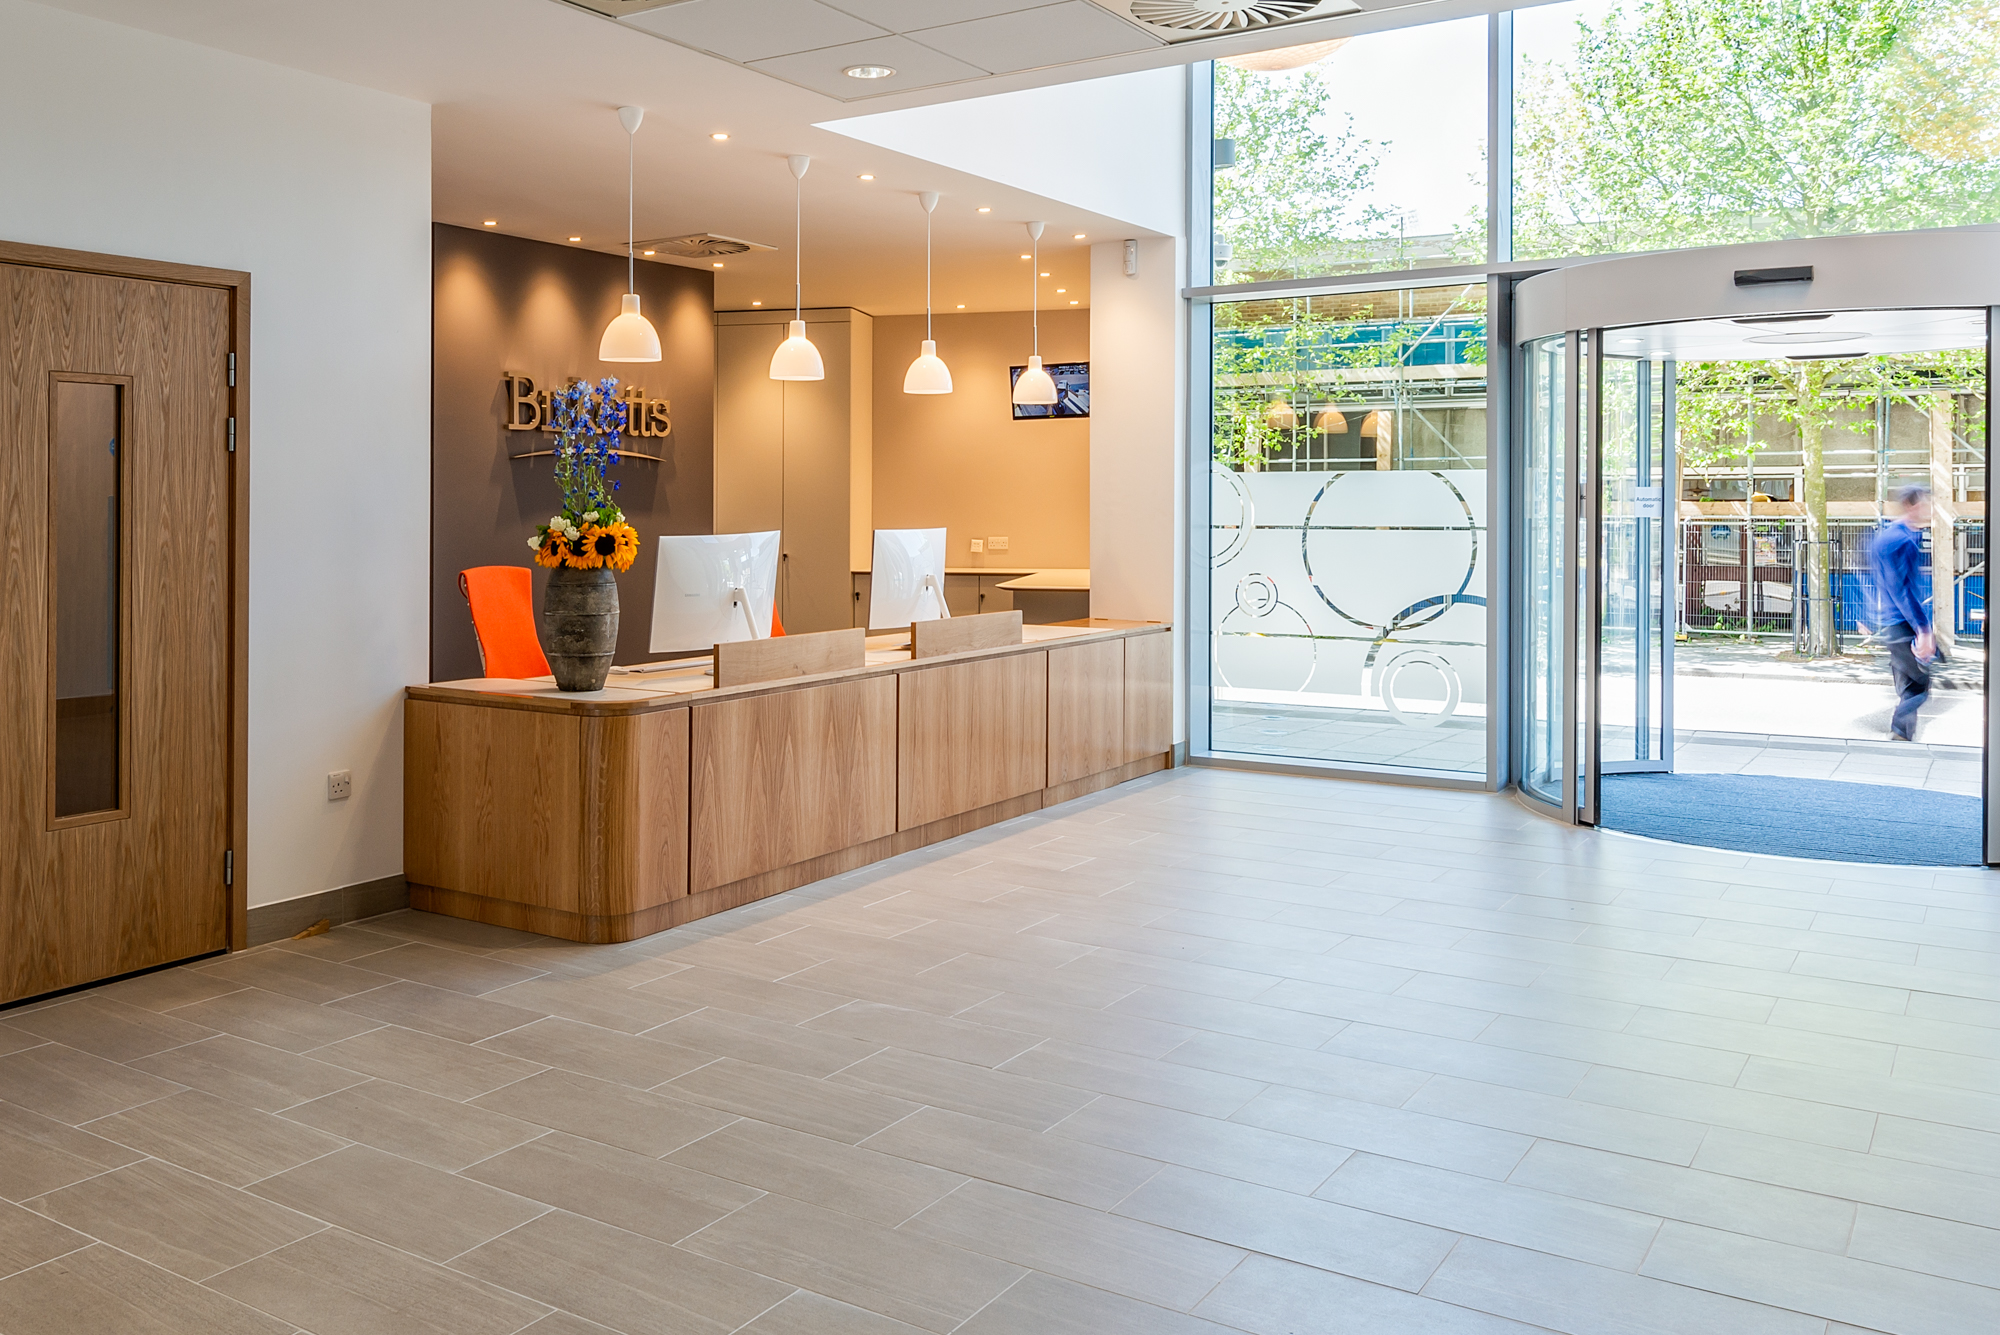 Commercial refurbishment for Law Firm